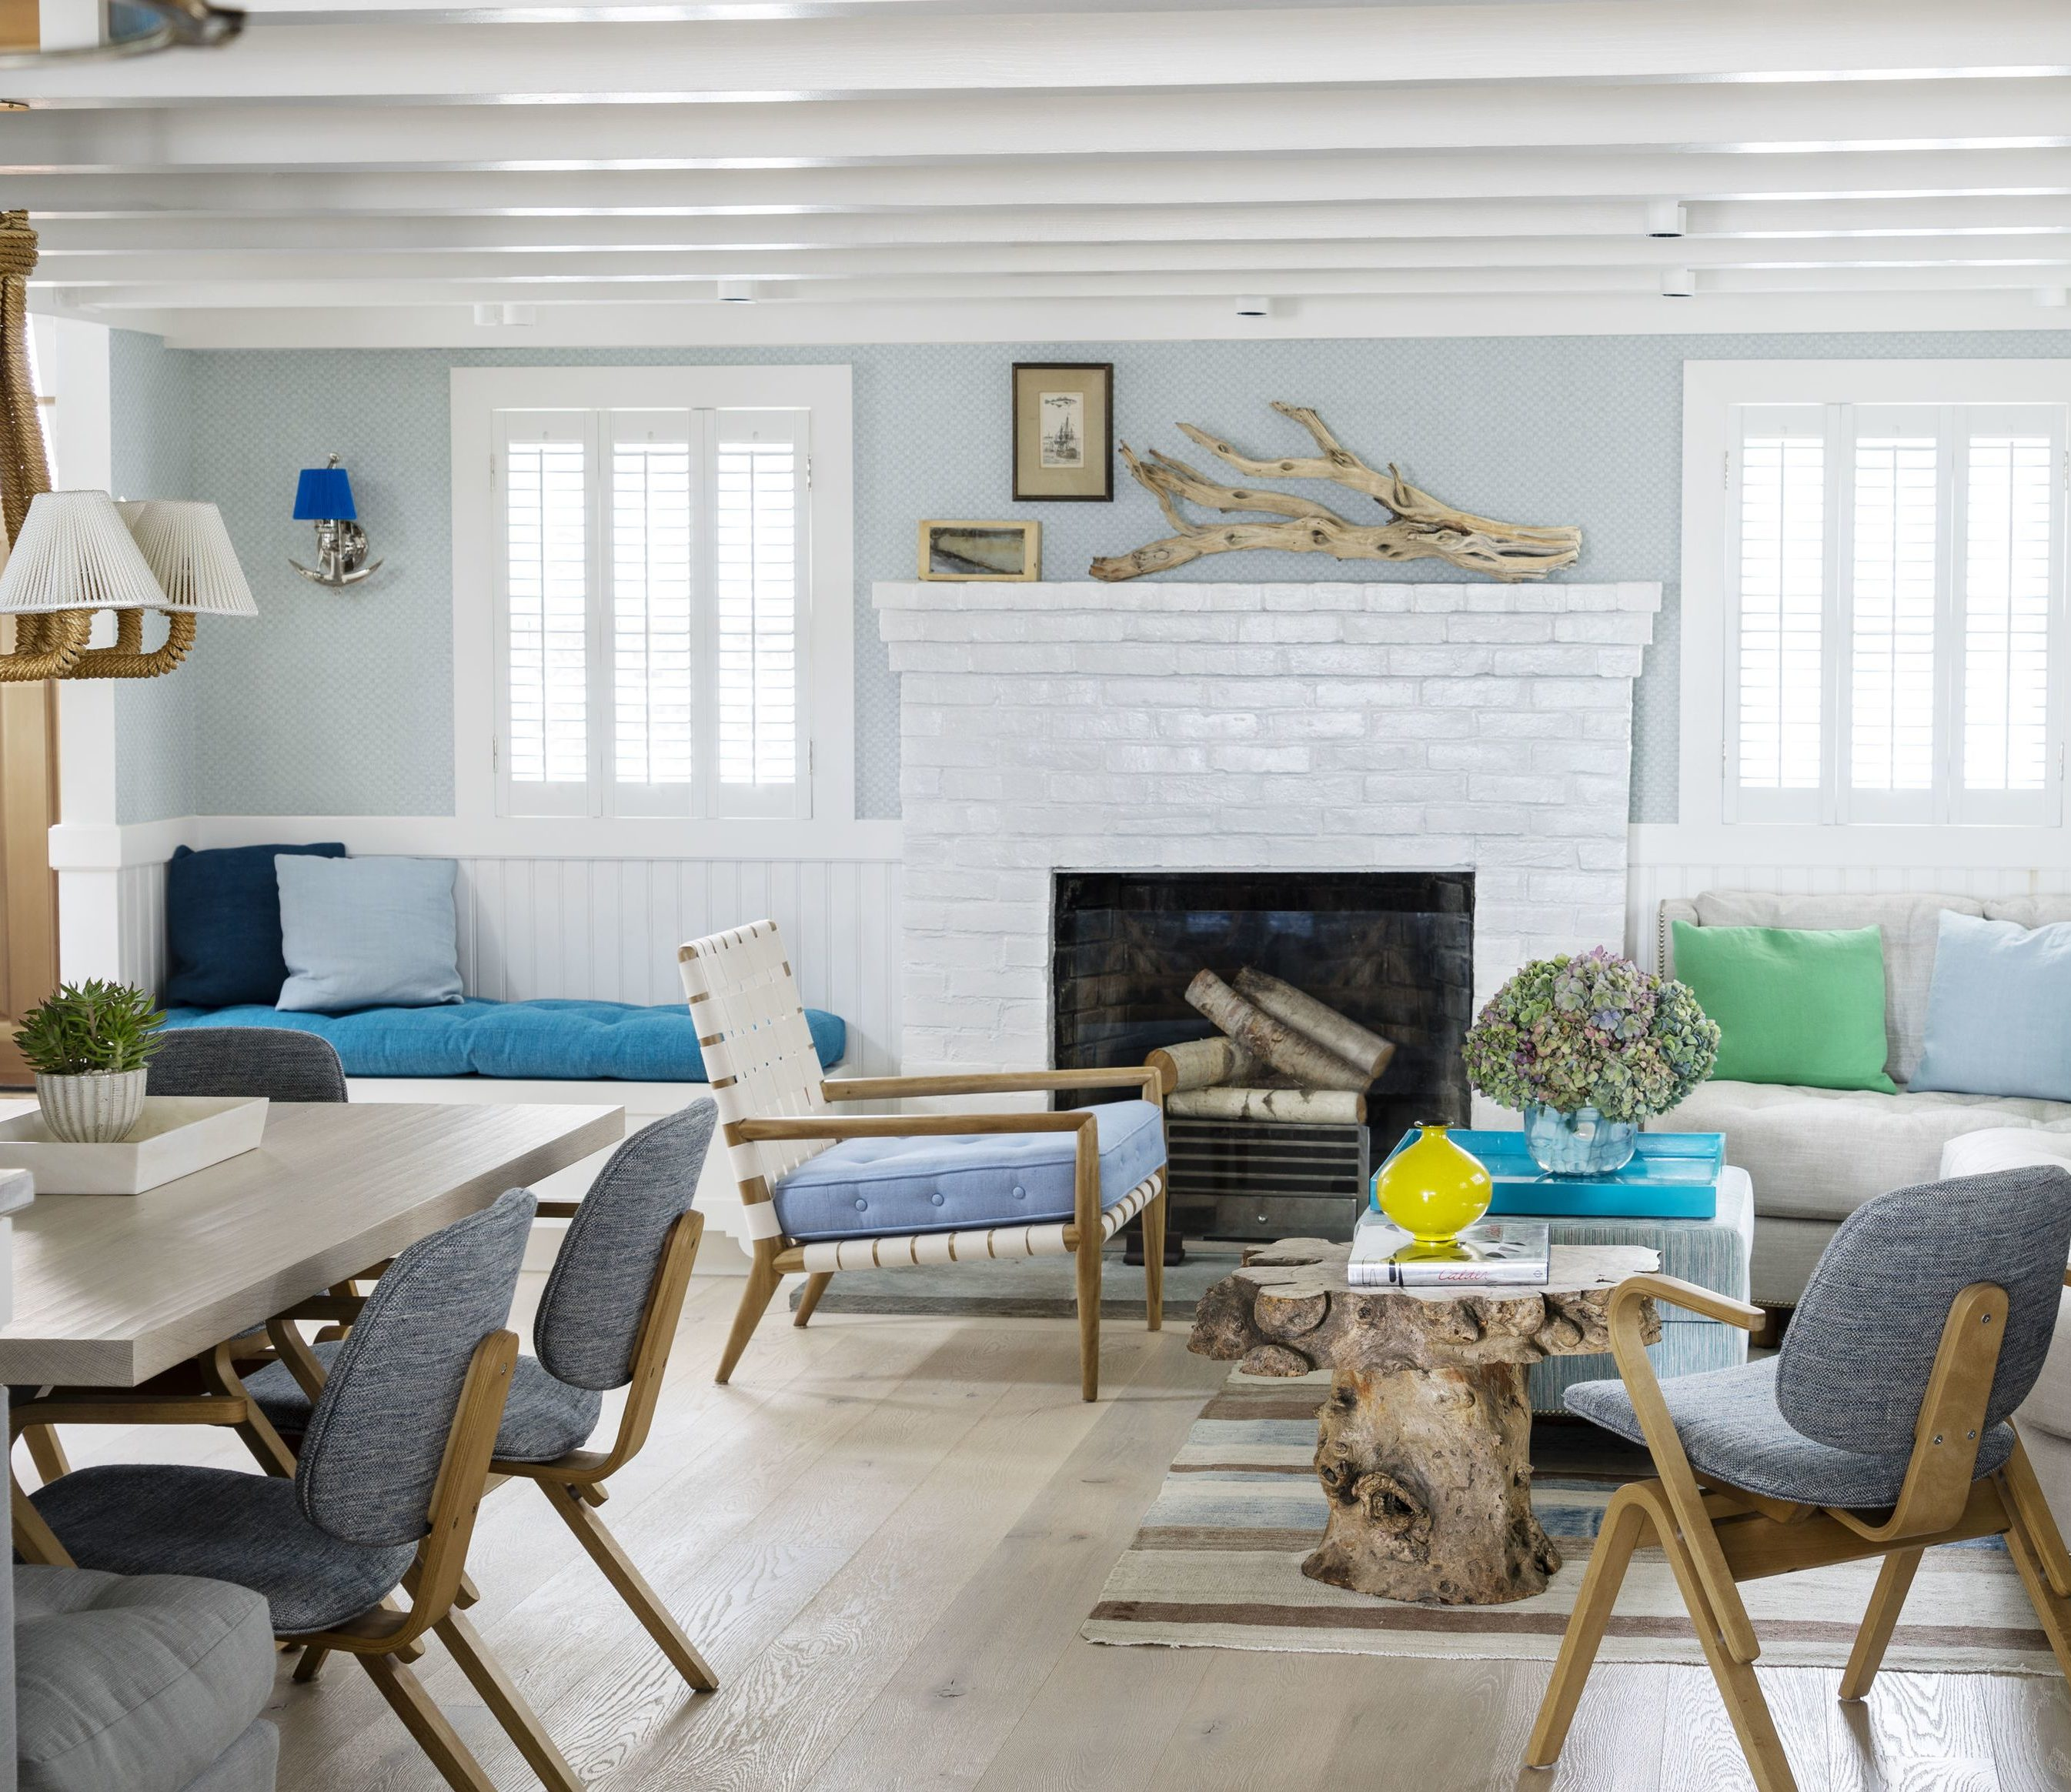 decor house have an endless summer with these 35 beach house decor ideas Driftwood over the mantel and as the base of a table add to the modern  coastal look of this open floor plan living space. Image: House Beautiful